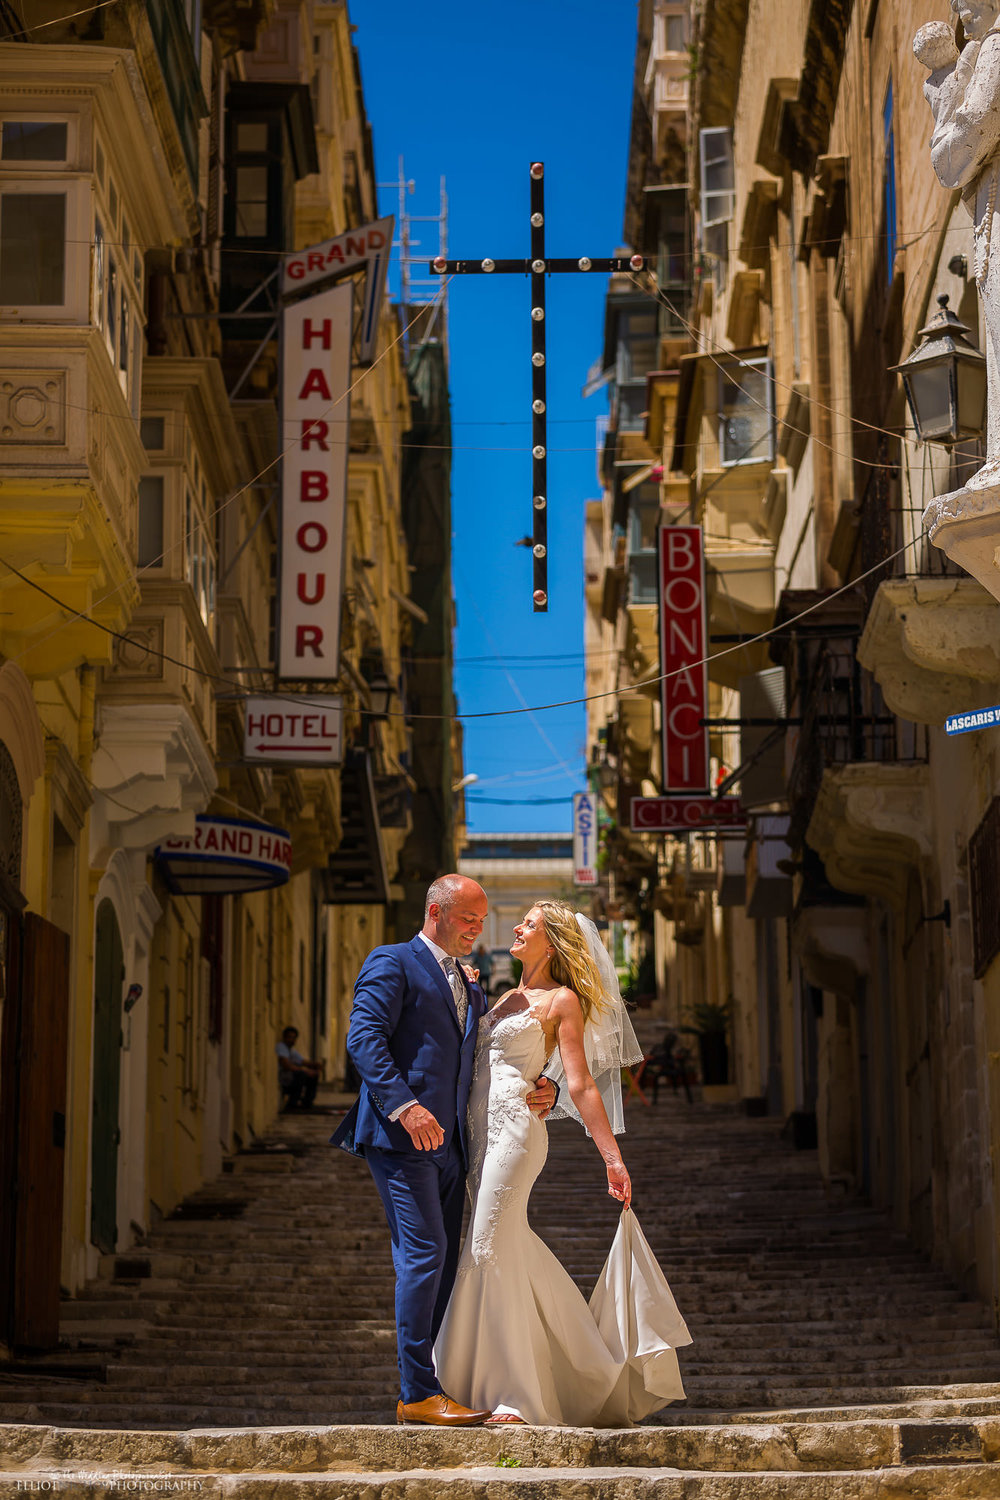 wedding-destination-weddings-photographer-photo-married-newlyweds